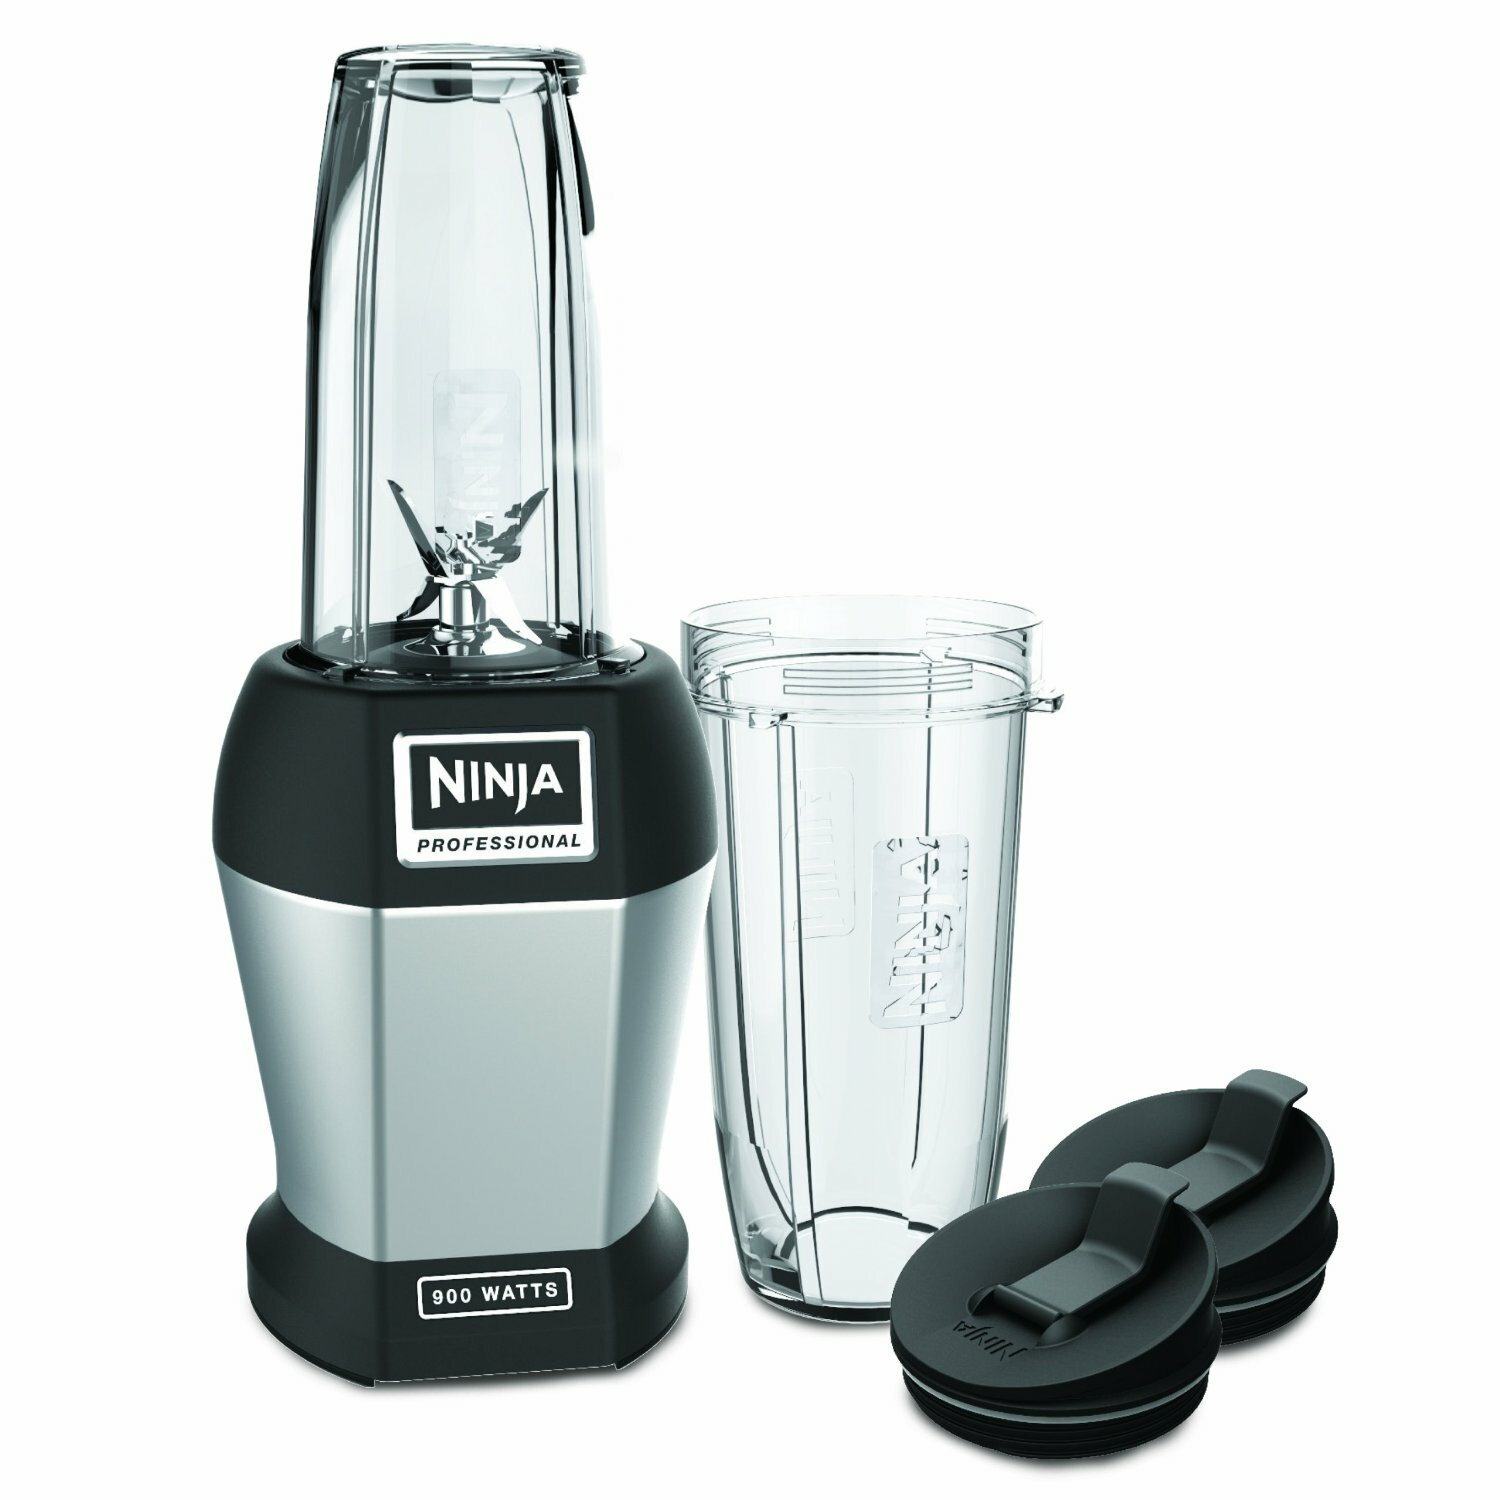 Ninja 3 Speed Nutri Ninja Pro Edge Blender & Reviews | Wayfair